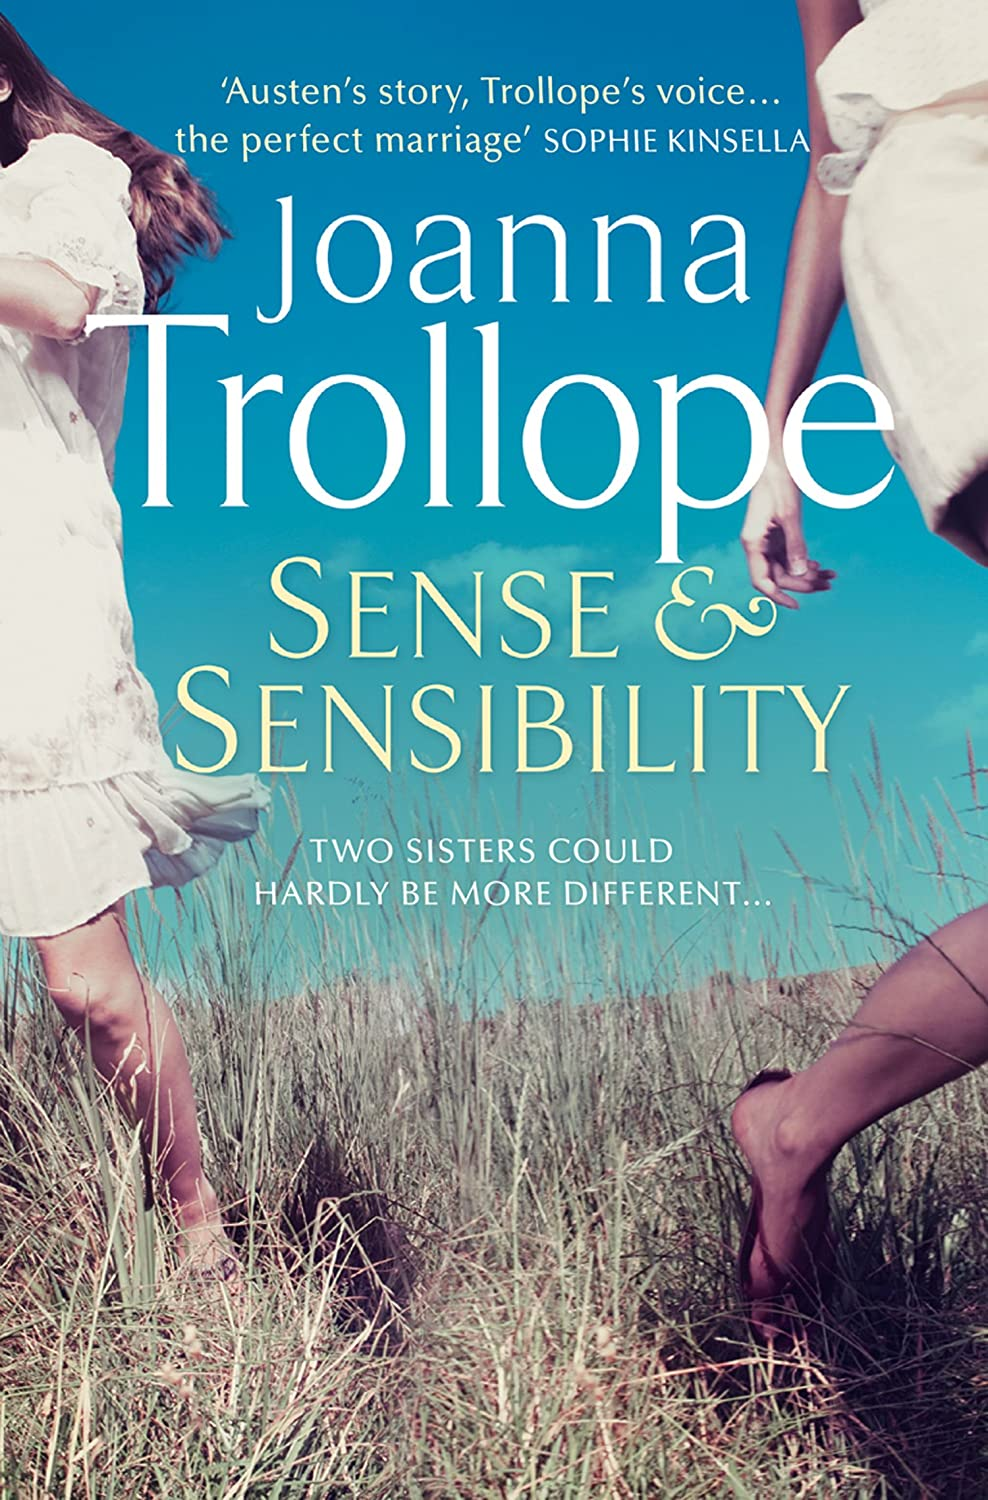 a description of the title sense and sensibility A look at the real houses from emma thompson's oscar-winning version of sense & sensibility that doubled as norland park and barton cottage.